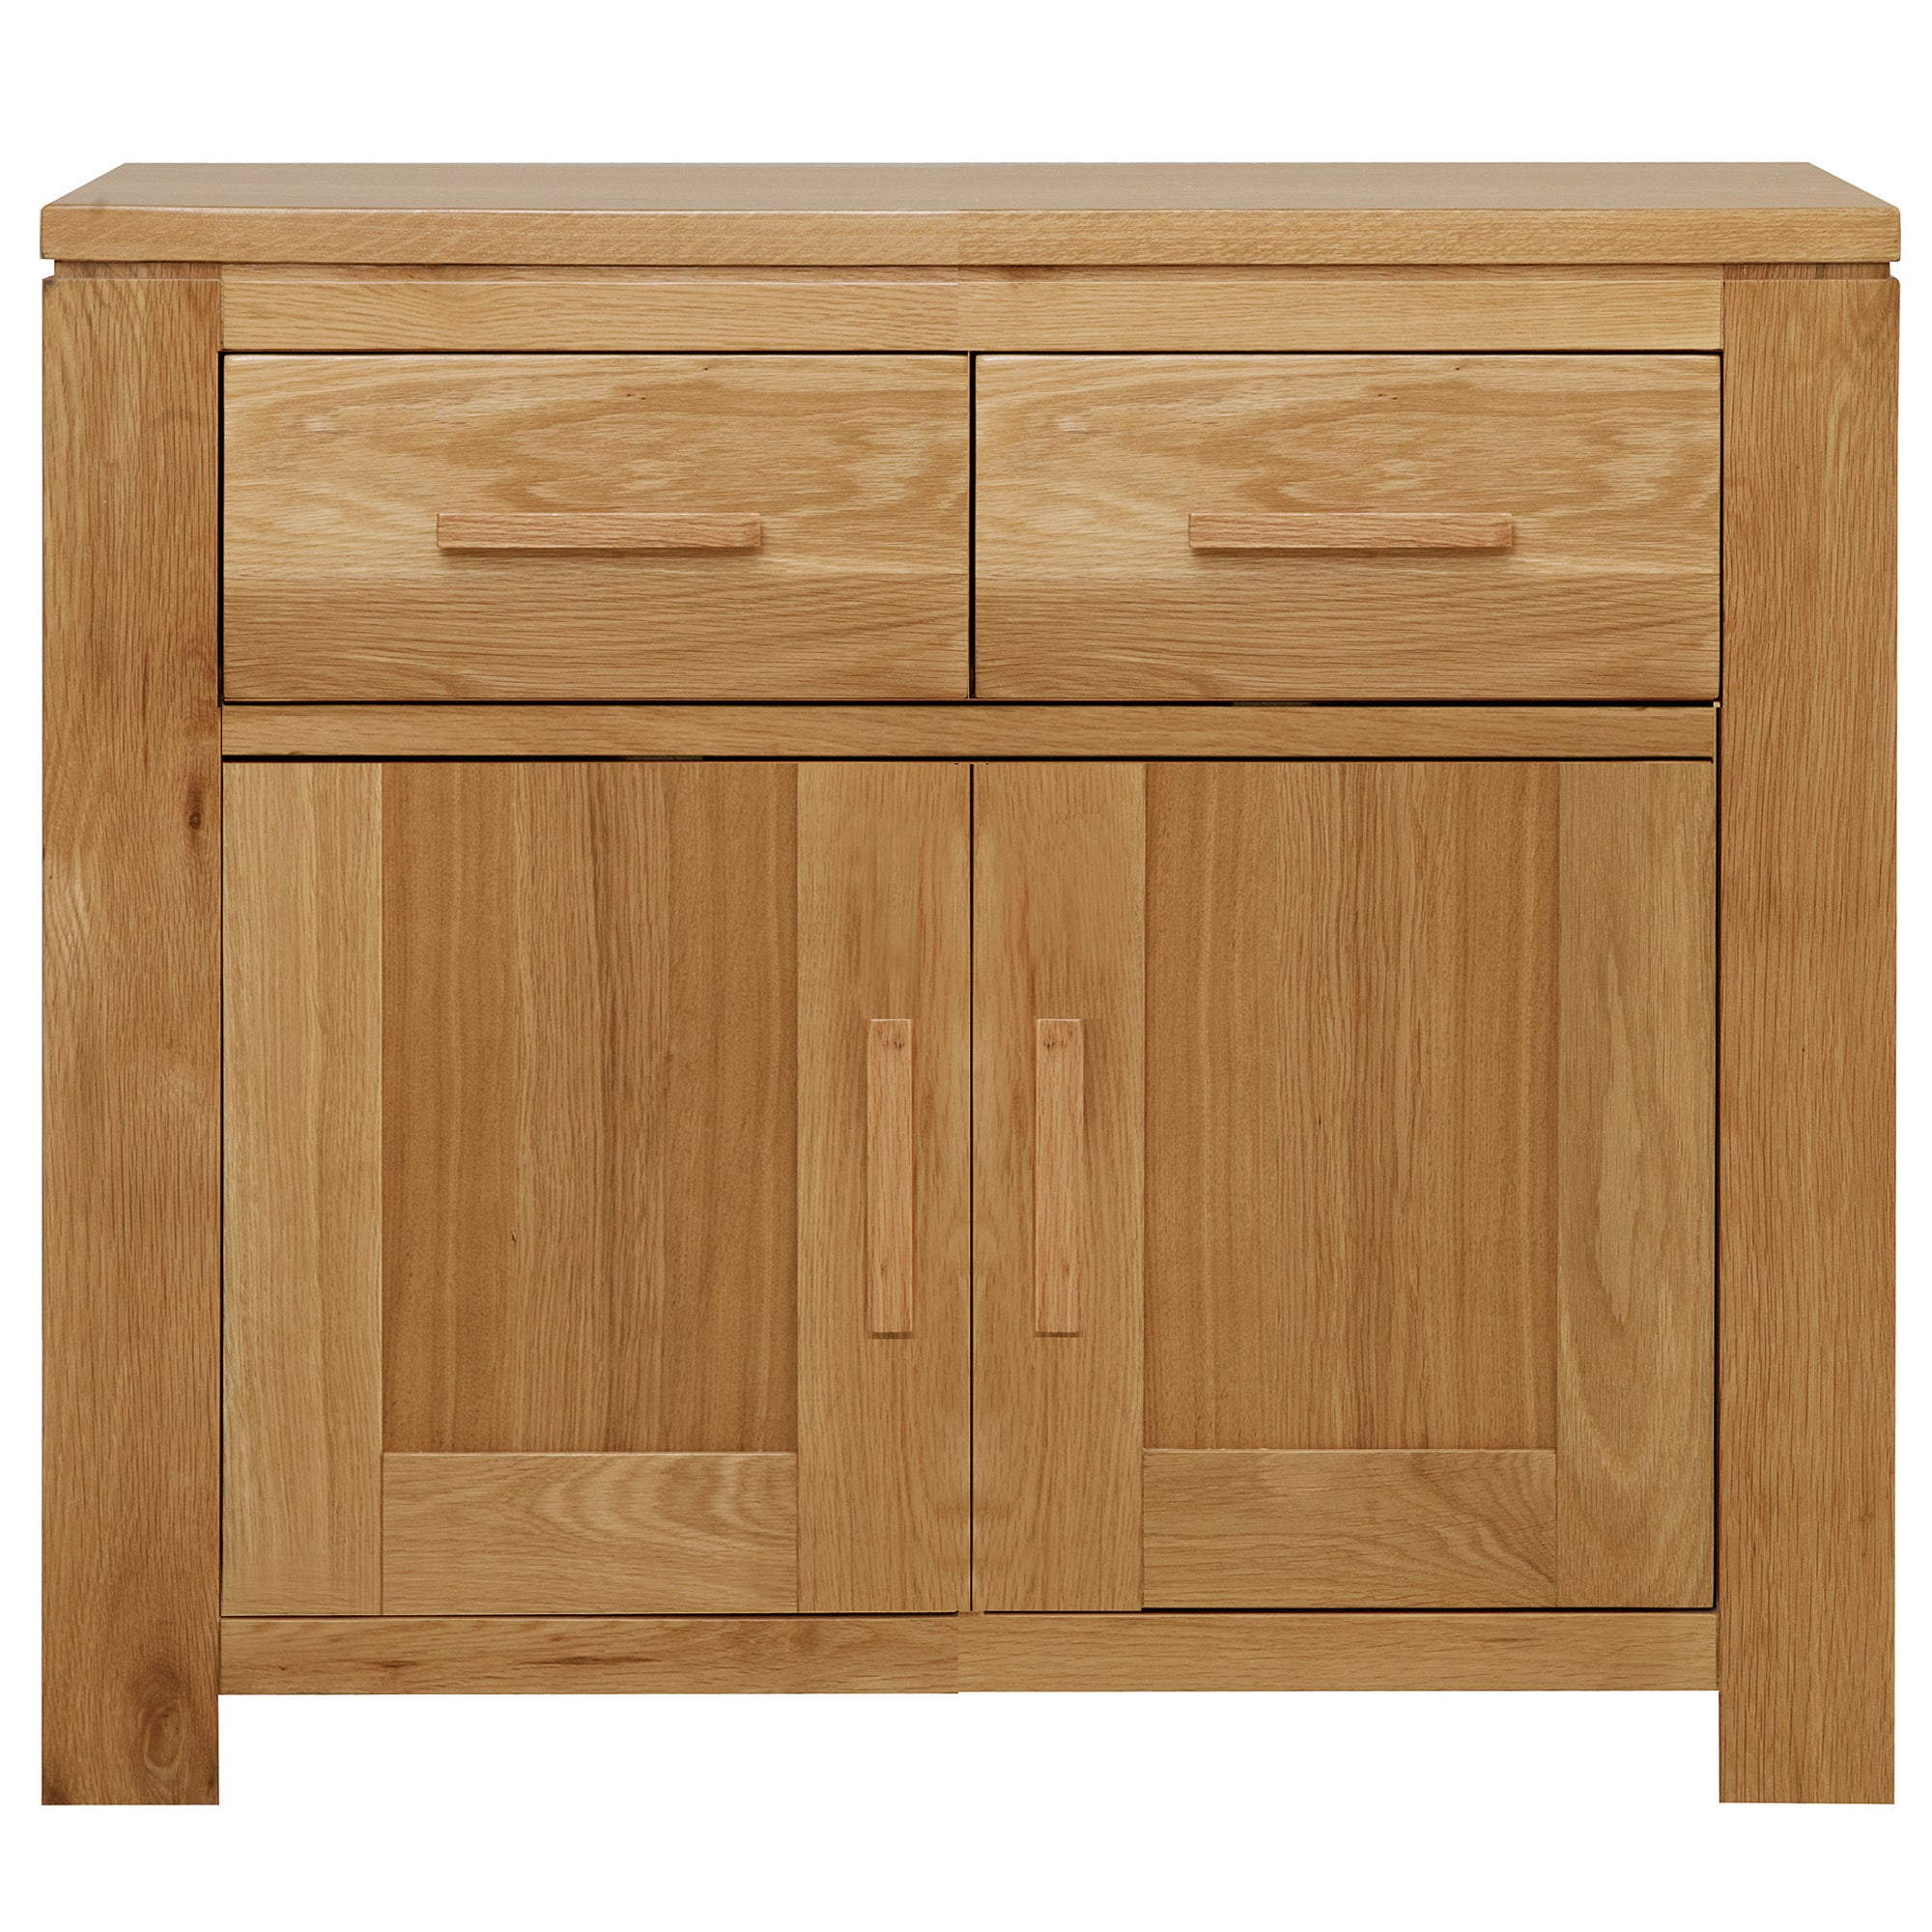 Seville Oak Small Sideboard